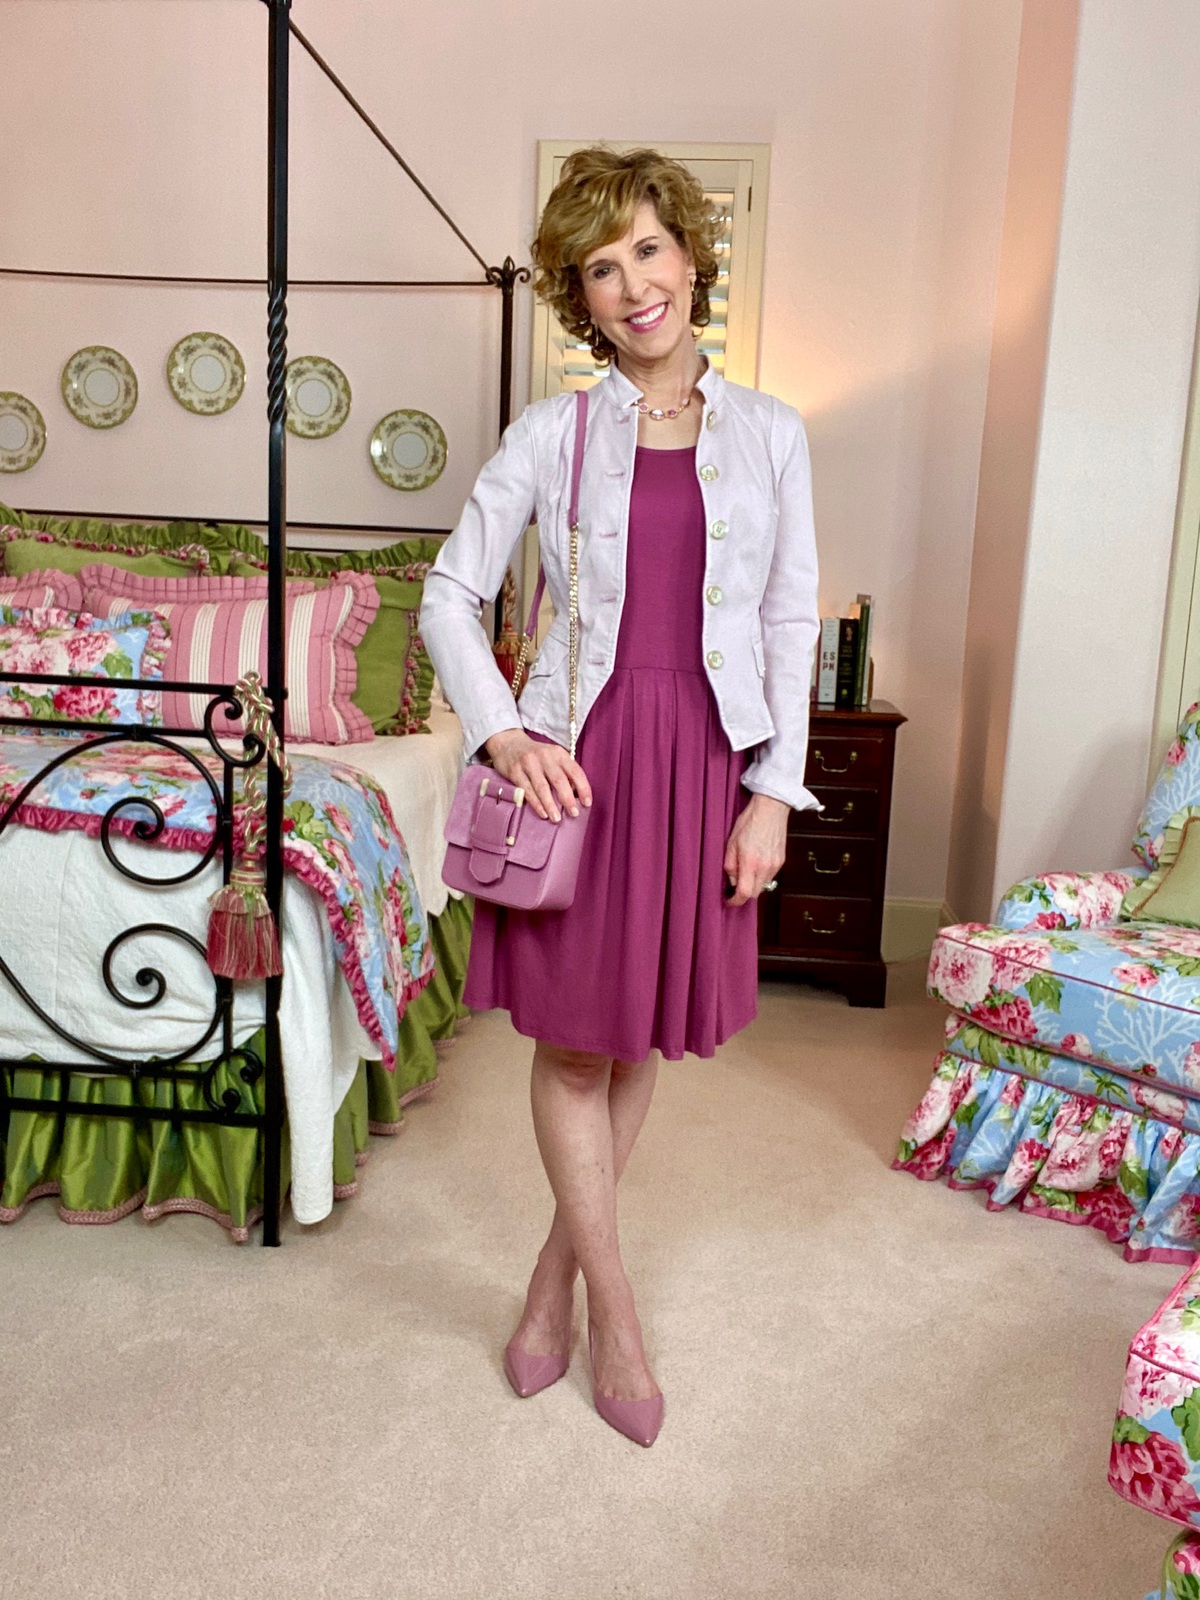 woman in pink dress and pink jacket in colorful bedroom